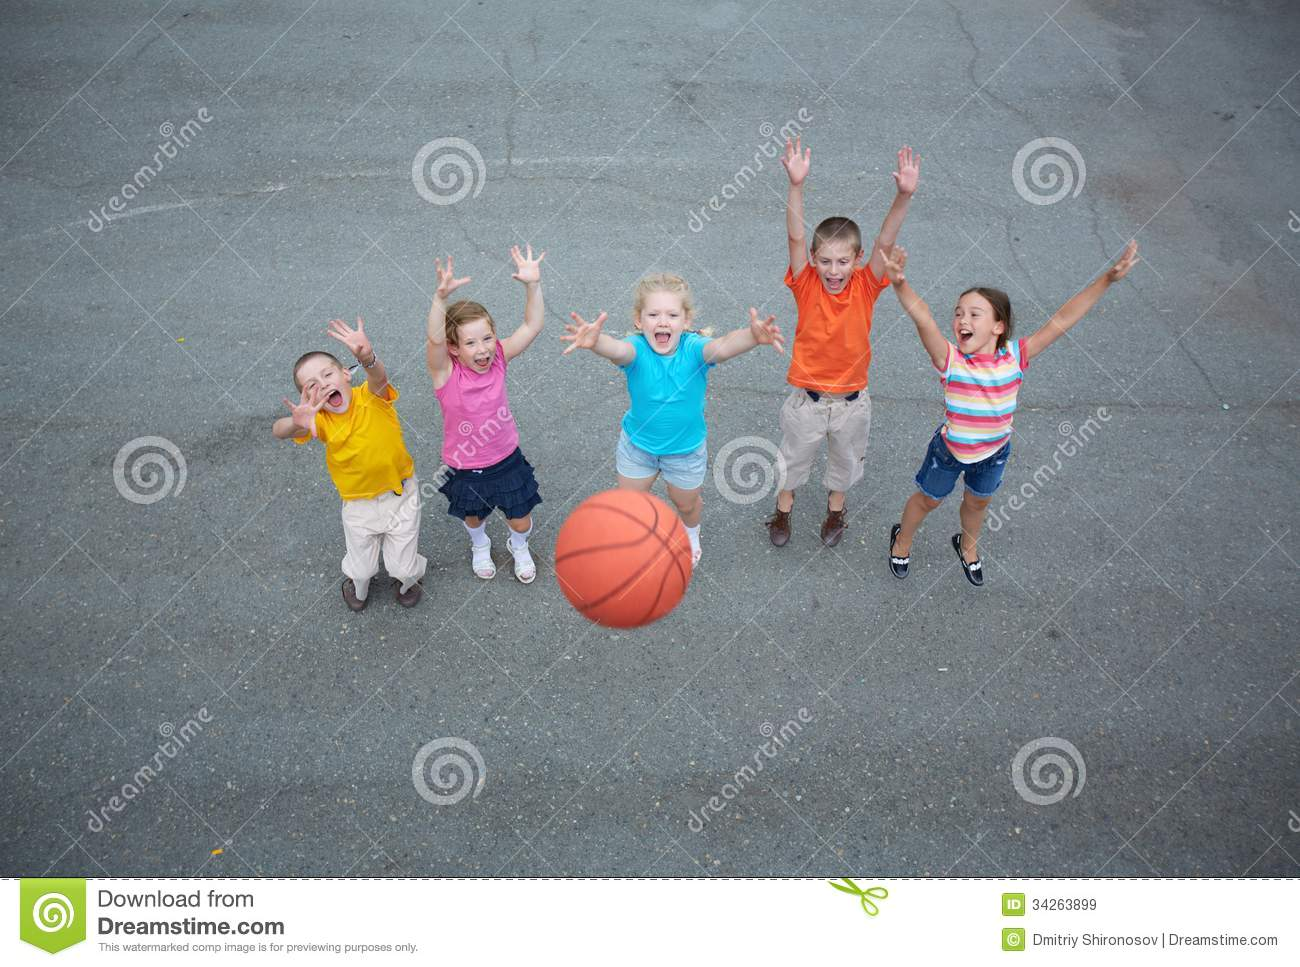 Basketball Players Royalty Free Stock Images - Image: 34263899